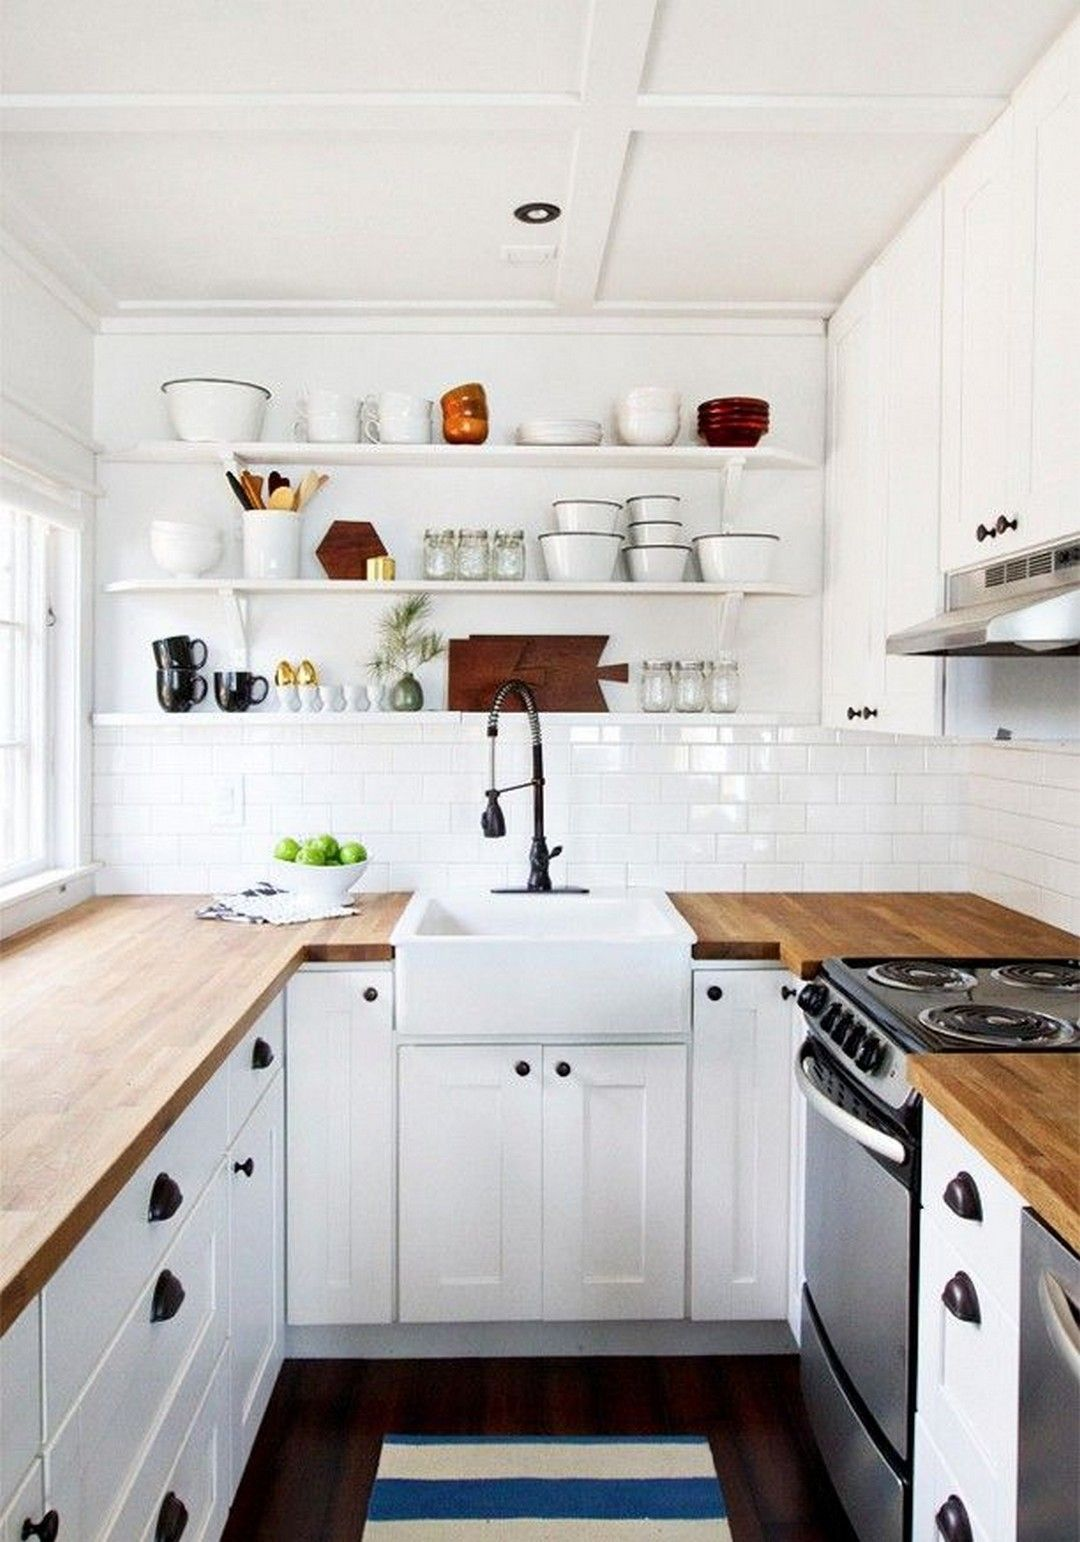 hight resolution of tiny house kitchen ideas less is much more and these 33 amazing tiny house cooking areas show it tinyhousekitchen tinyhouse